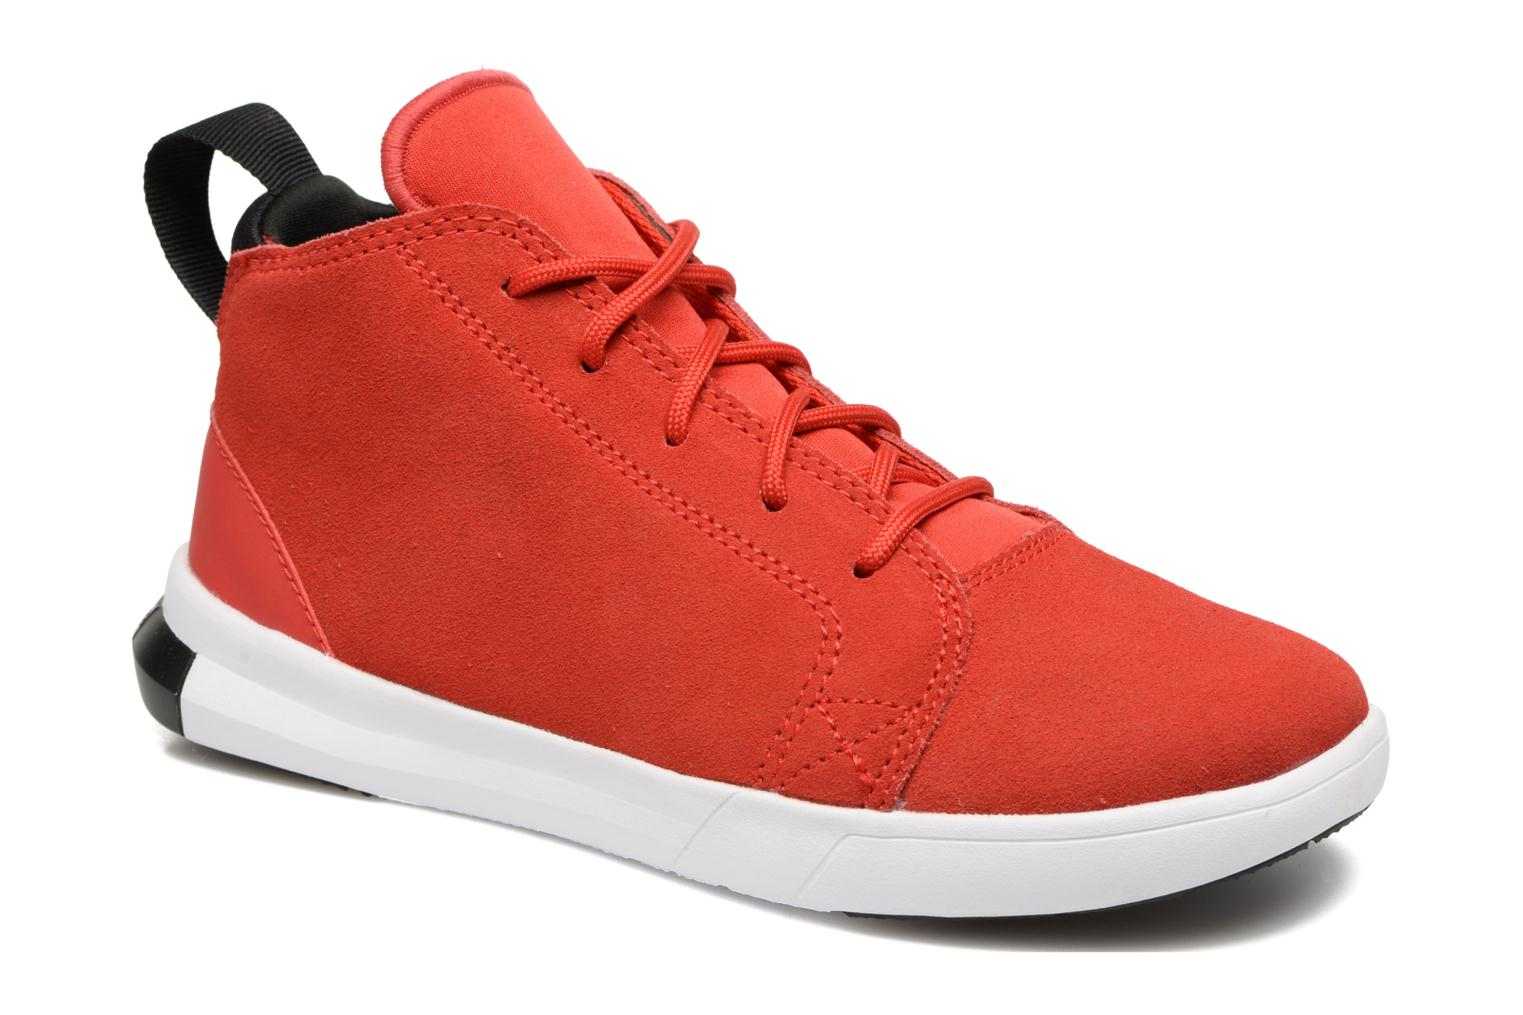 Chuck Taylor All Star Easy Ride Mid Red/black/white